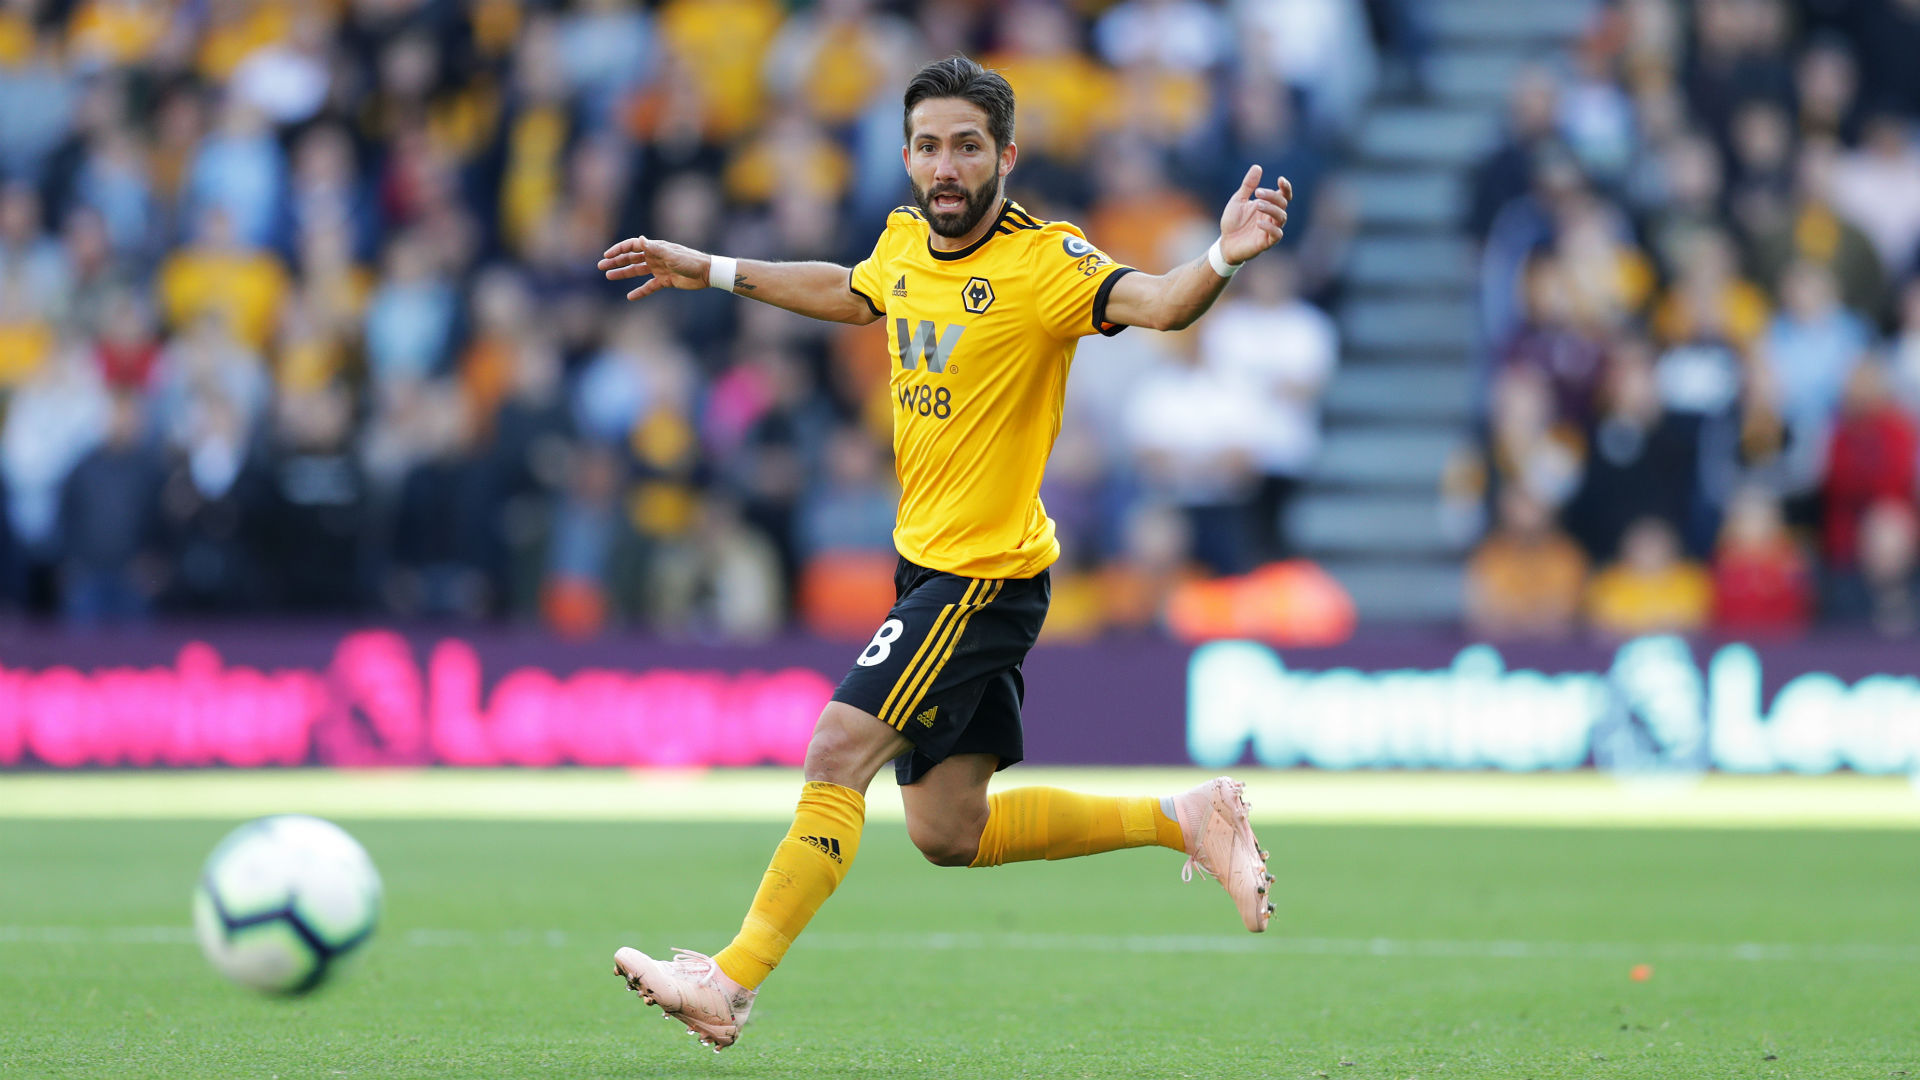 Moutinho targets European qualification with Wolves